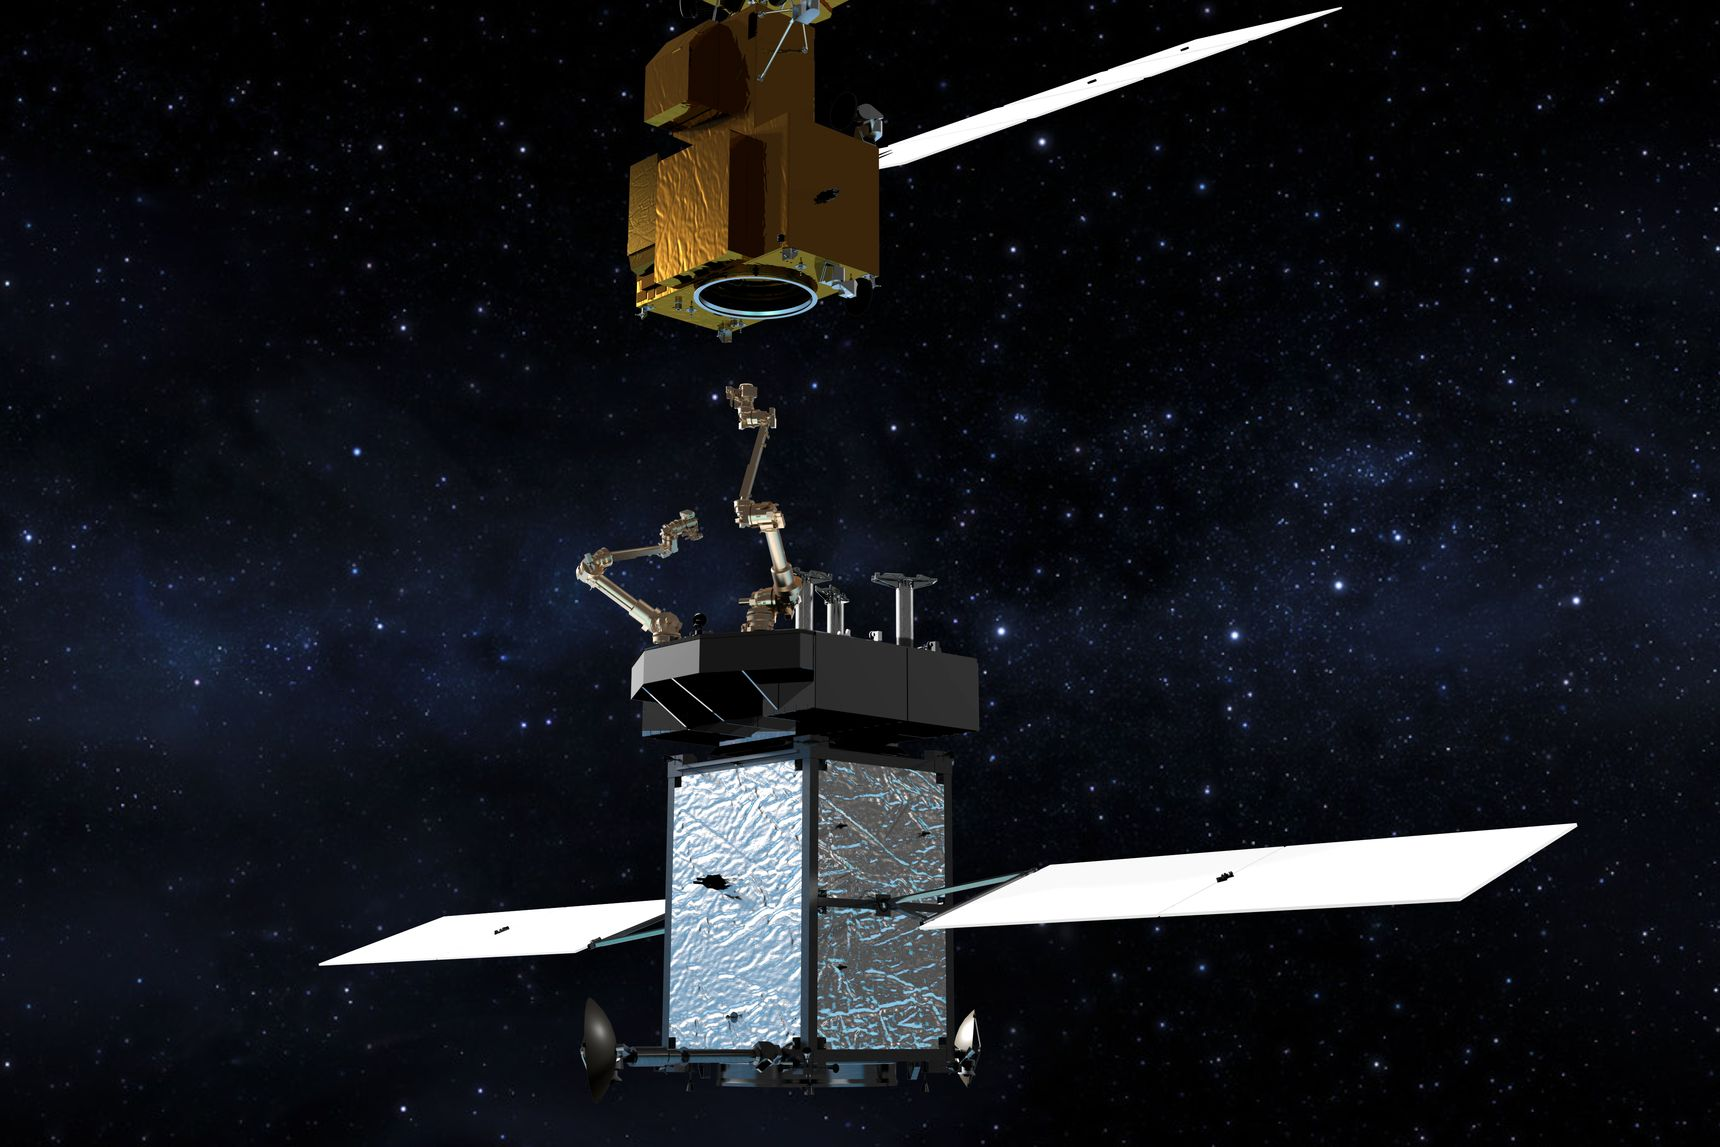 An artist's impression of the Restore L spacecraft that could refuel and service Earth-orbiting satellites in the future.